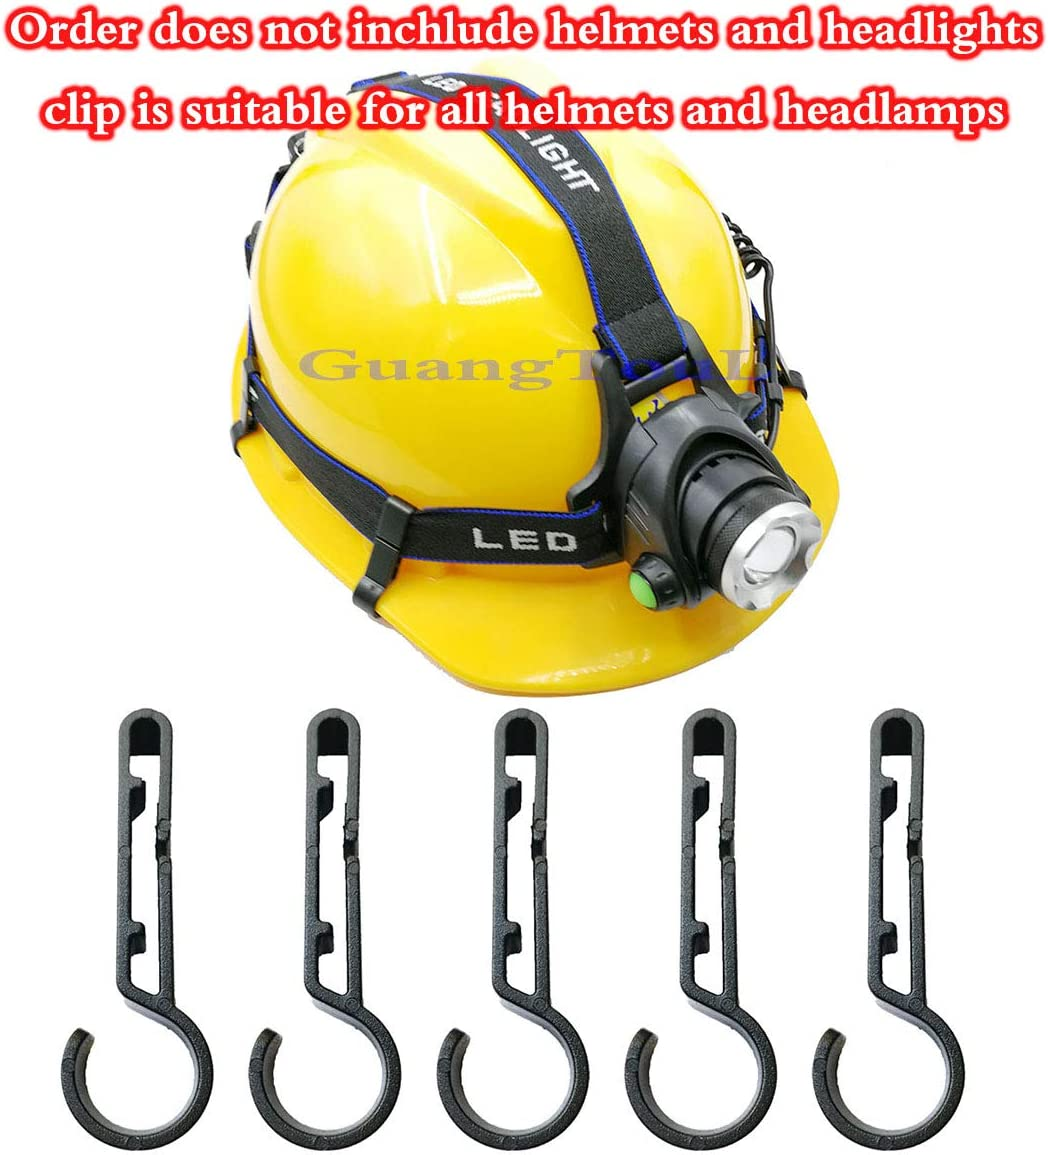 suitable for various headlamps helmets andSombrero duro GuangTou 32 pcs Headlamp Clip for Sombrero duro helmet headlamp clip